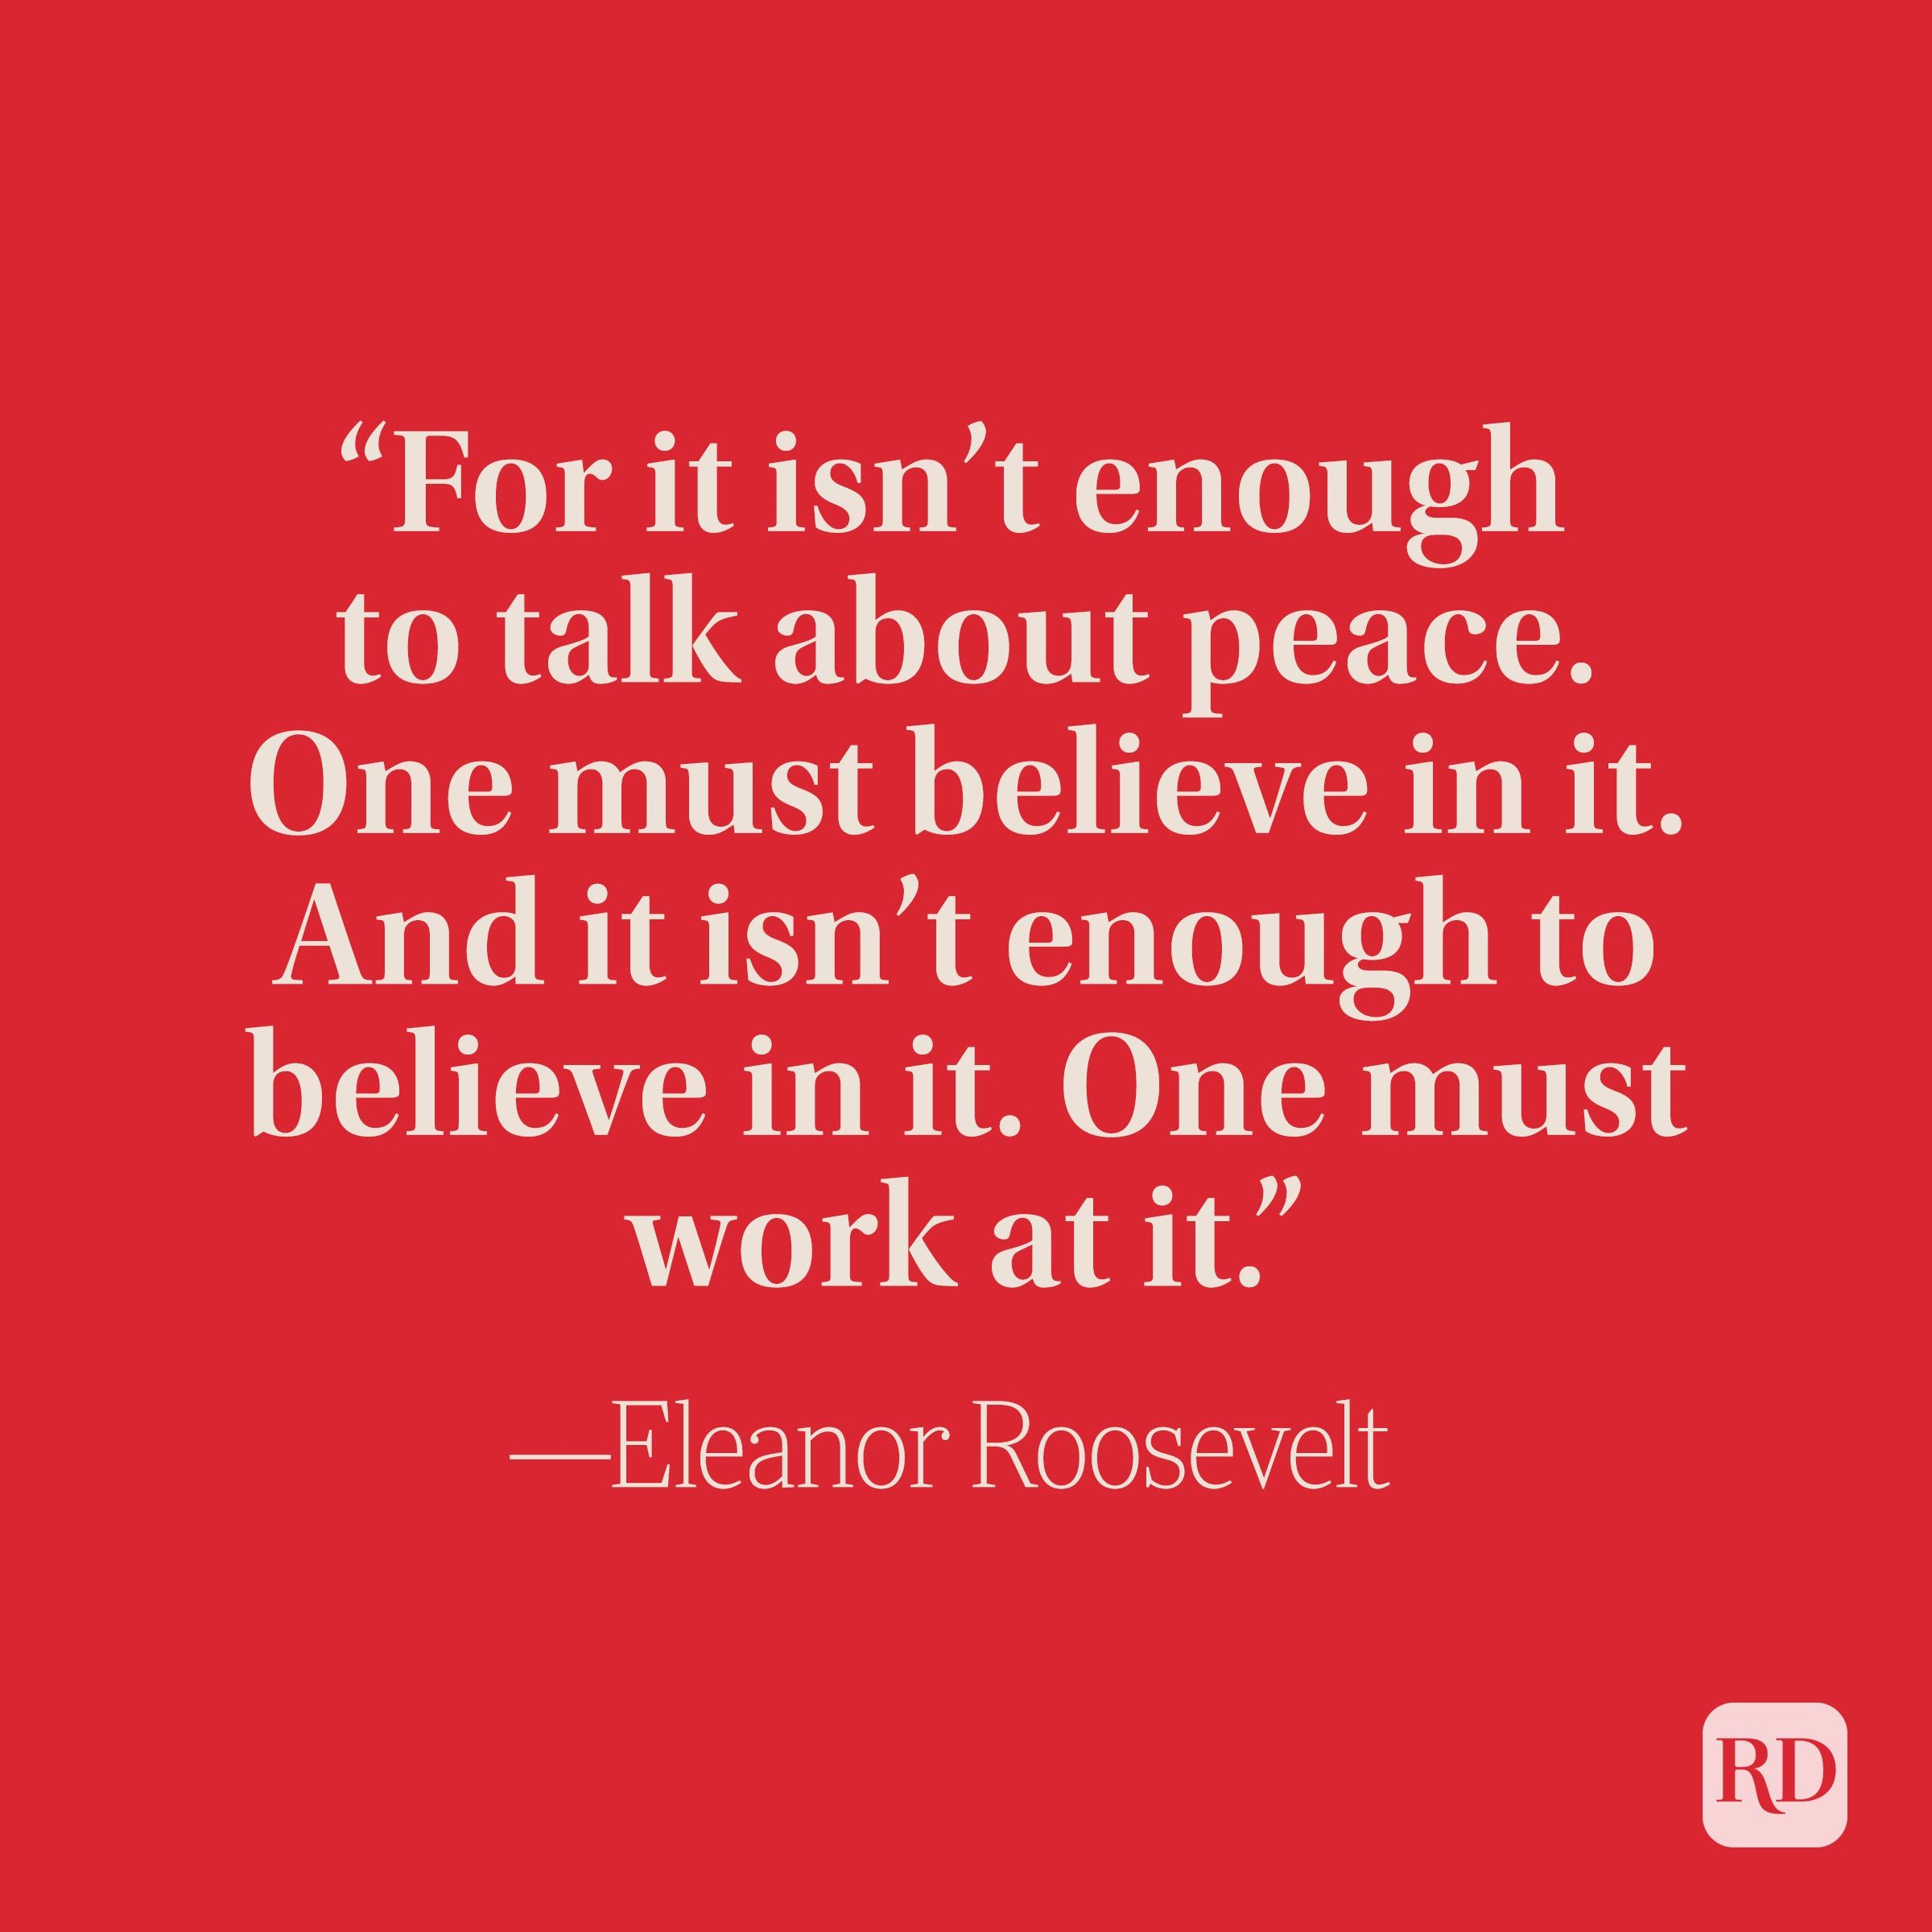 """""""For it isn't enough to talk about peace. One must believe in it. And it isn't enough to believe in it. One must work at it."""" –Eleanor Roosevelt"""